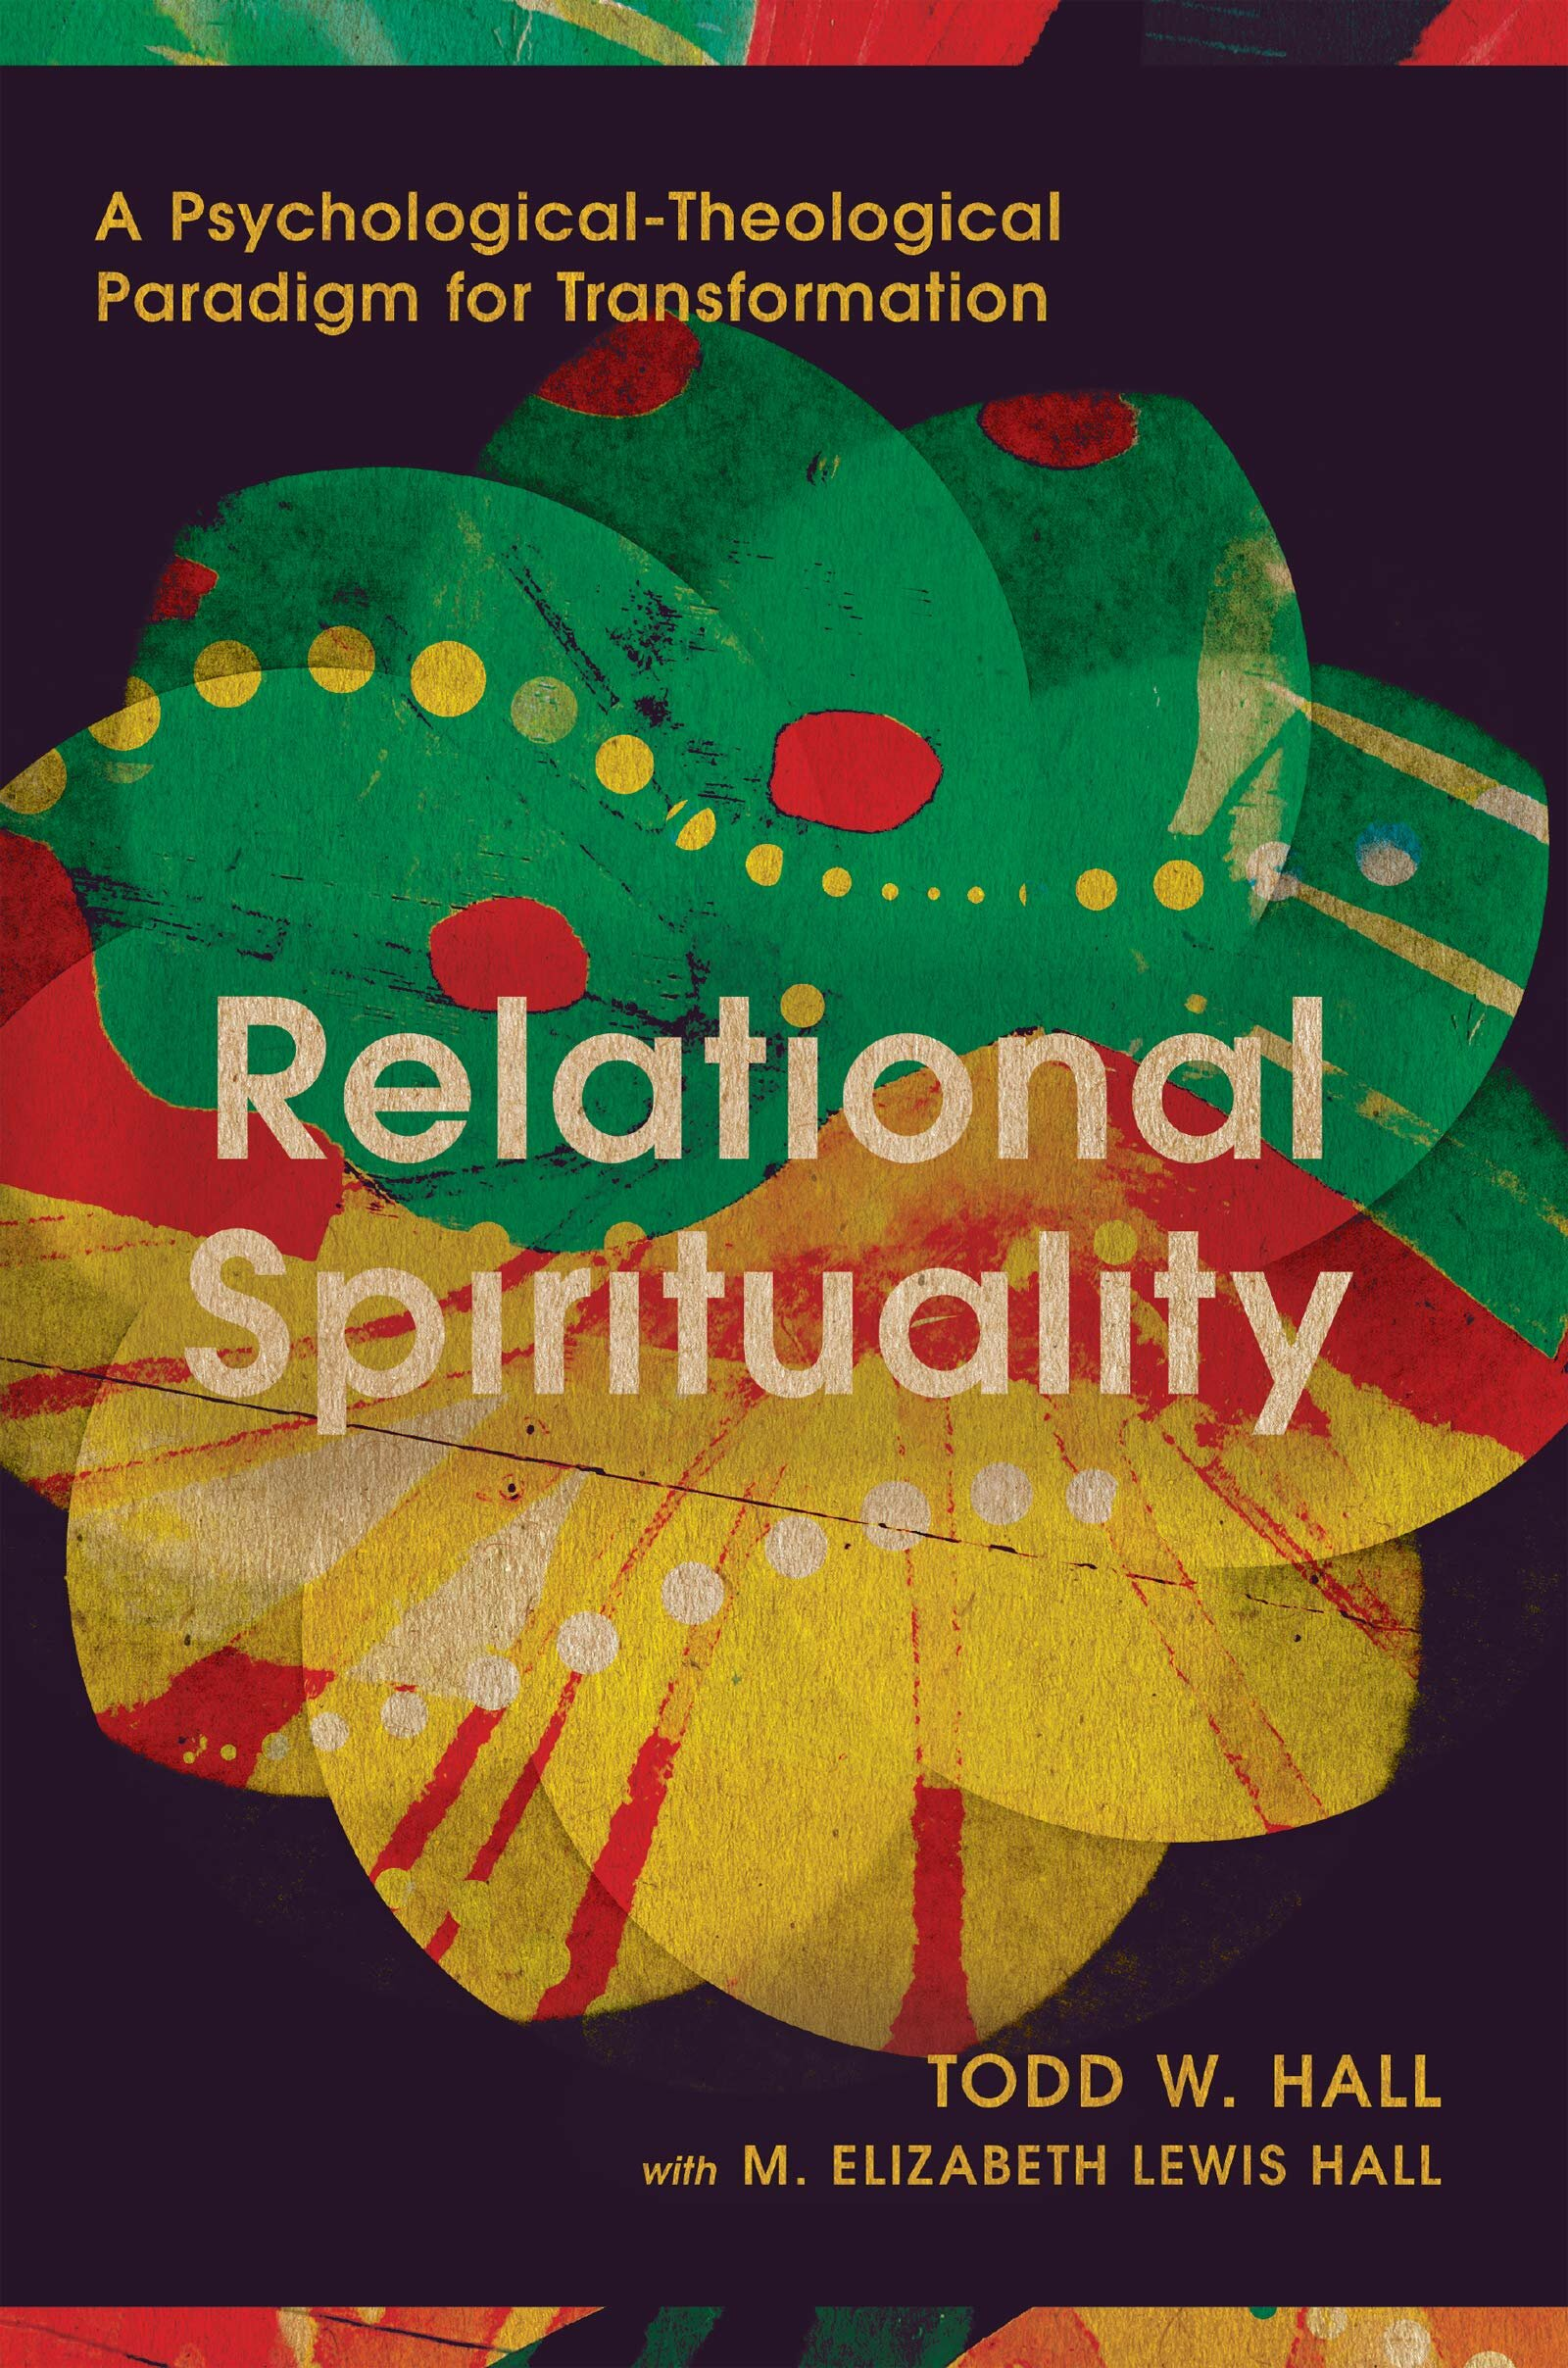 Relational Spirituality: A Psychological-Theological Paradigm for Transformation (Christian Association for Psychological Studies)